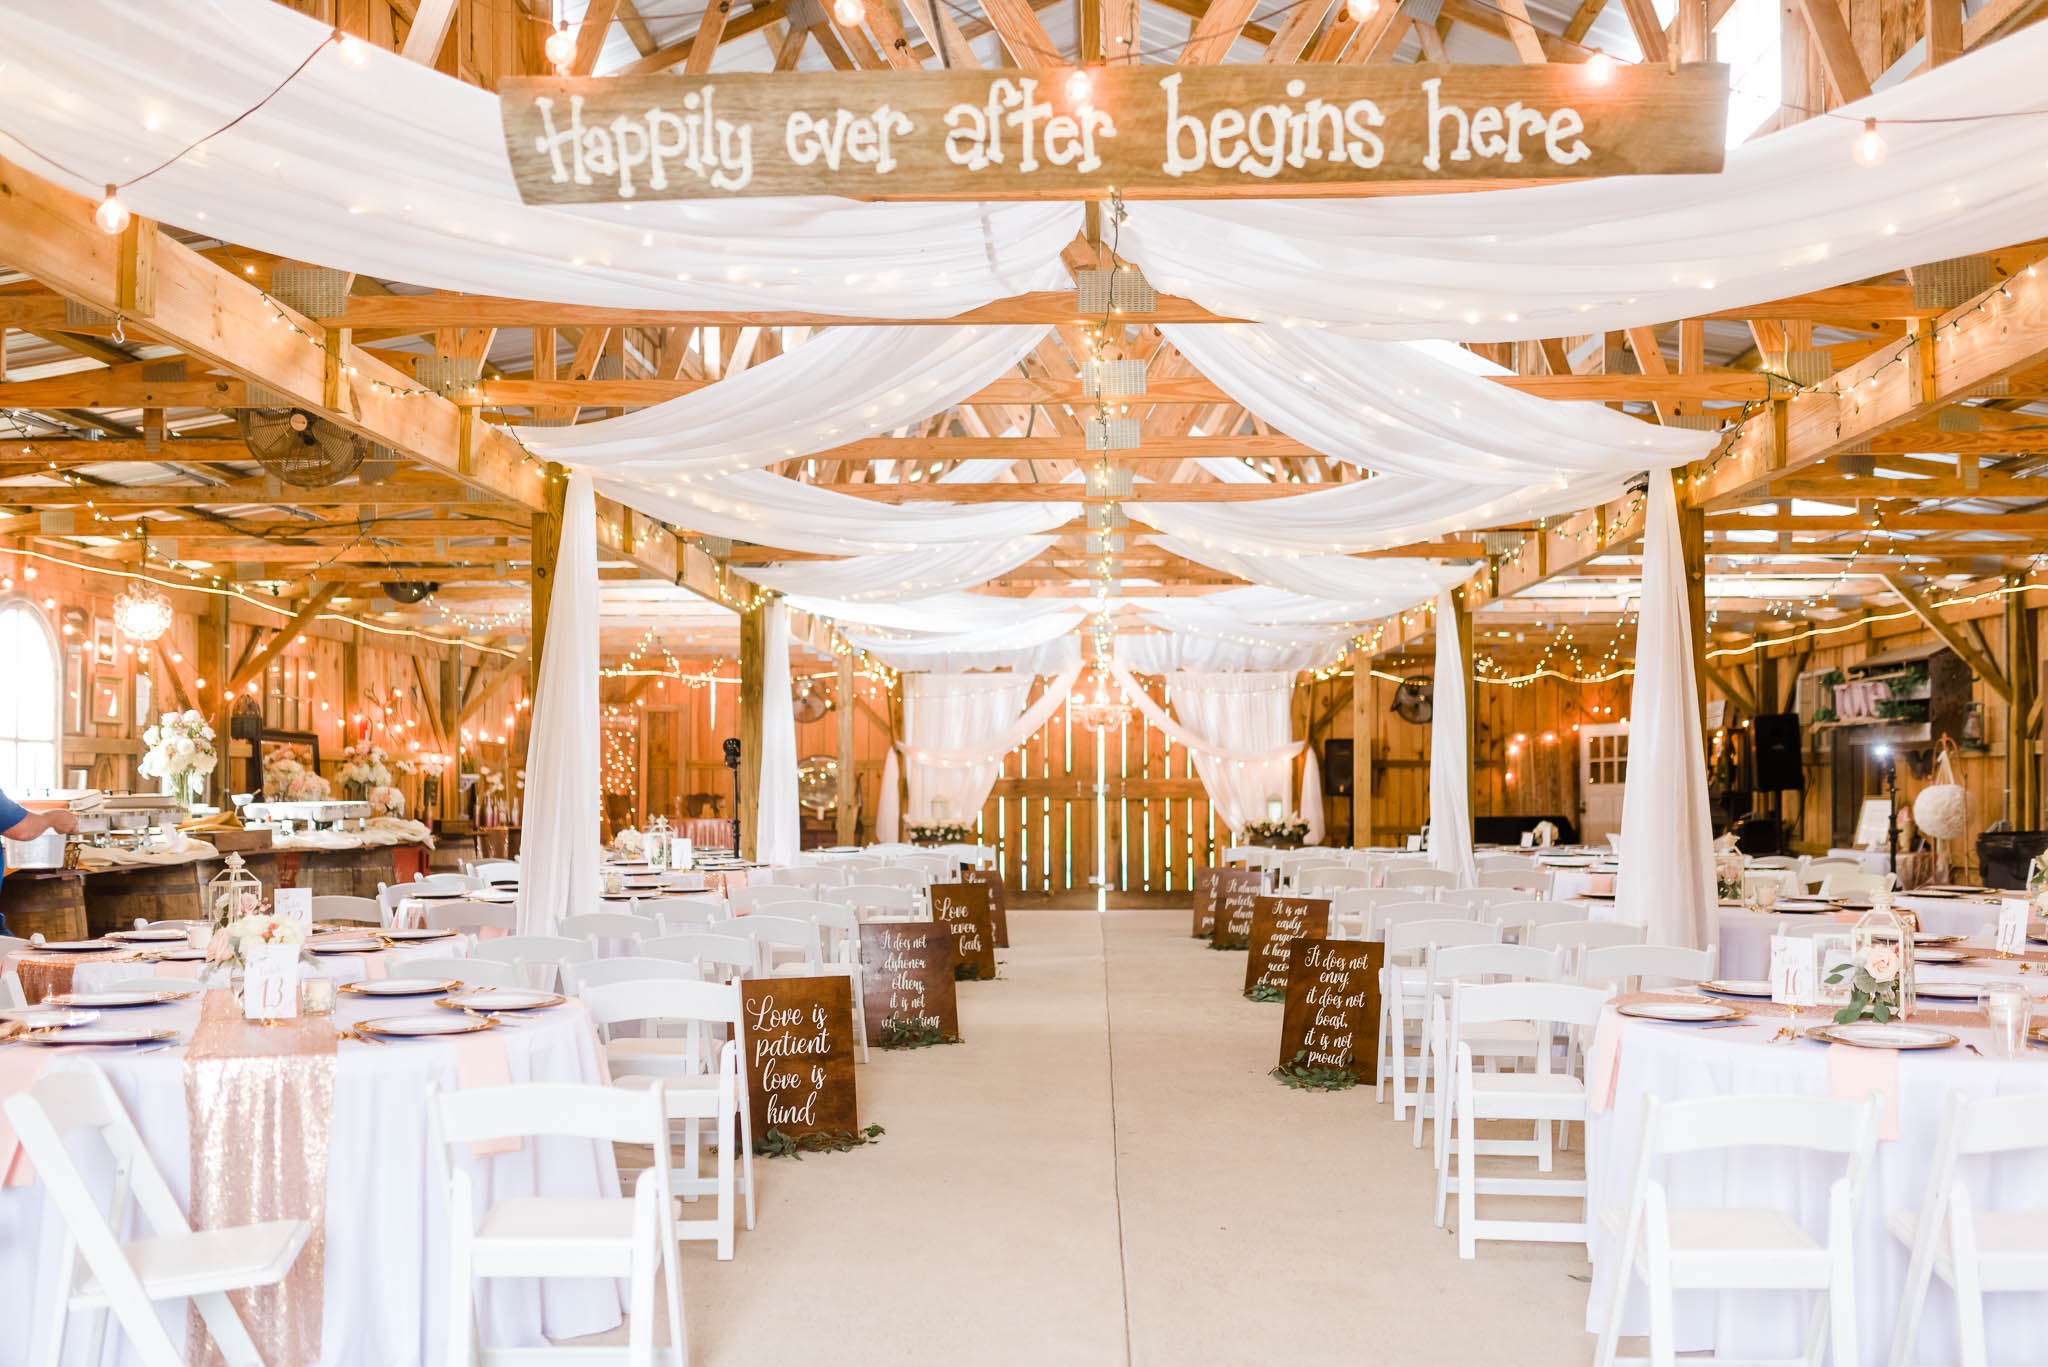 Wedding Interior Design: Gallery Of Venue And Wedding Photos From The Barn At